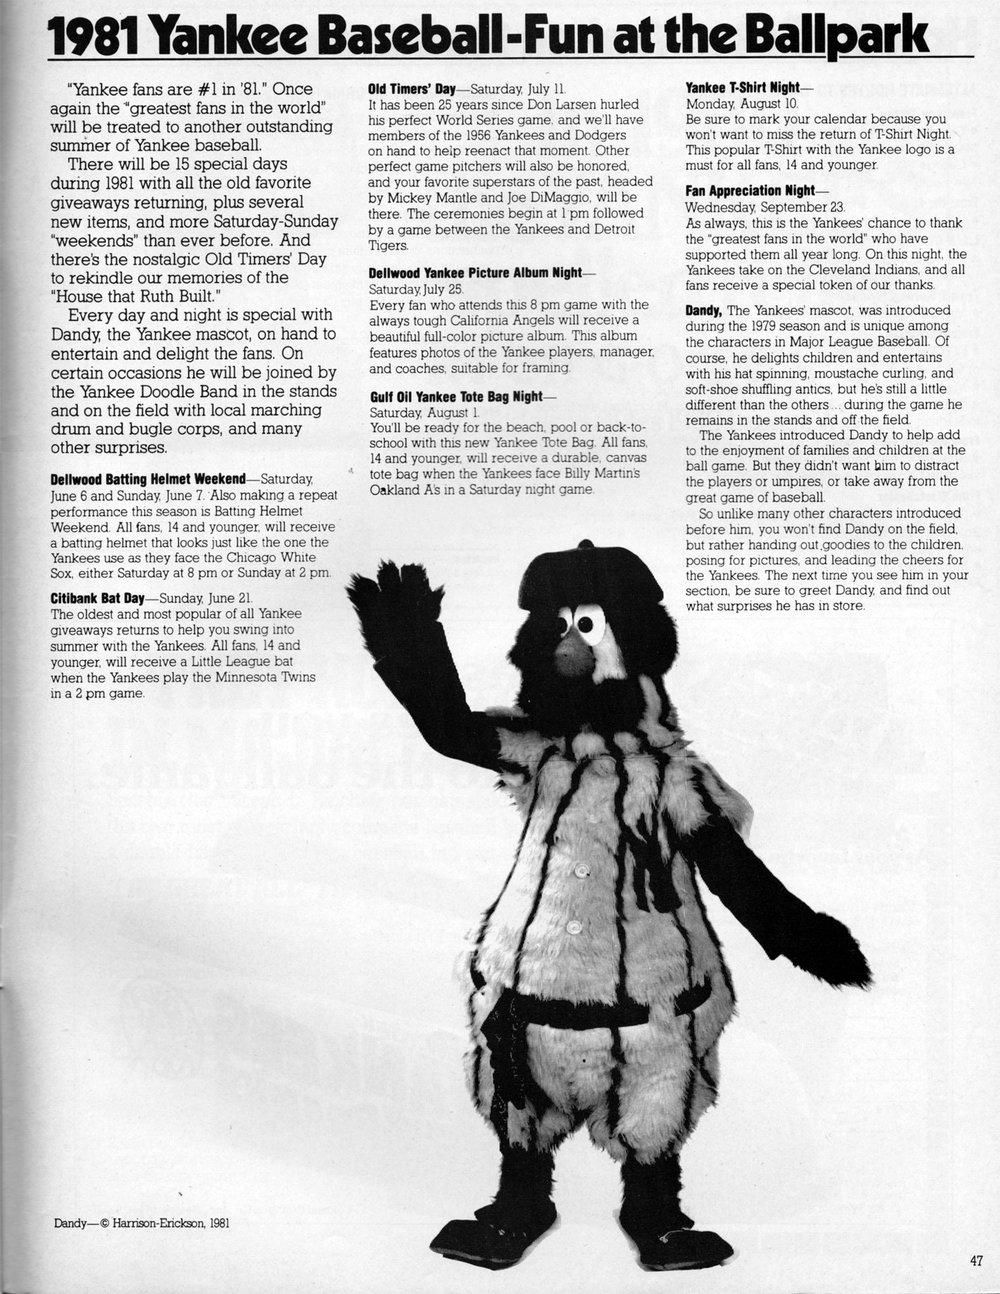 I was no longer the mascot in 1981 but due to the players strike, Dandy was rarely seen and disappeared forever after the season.